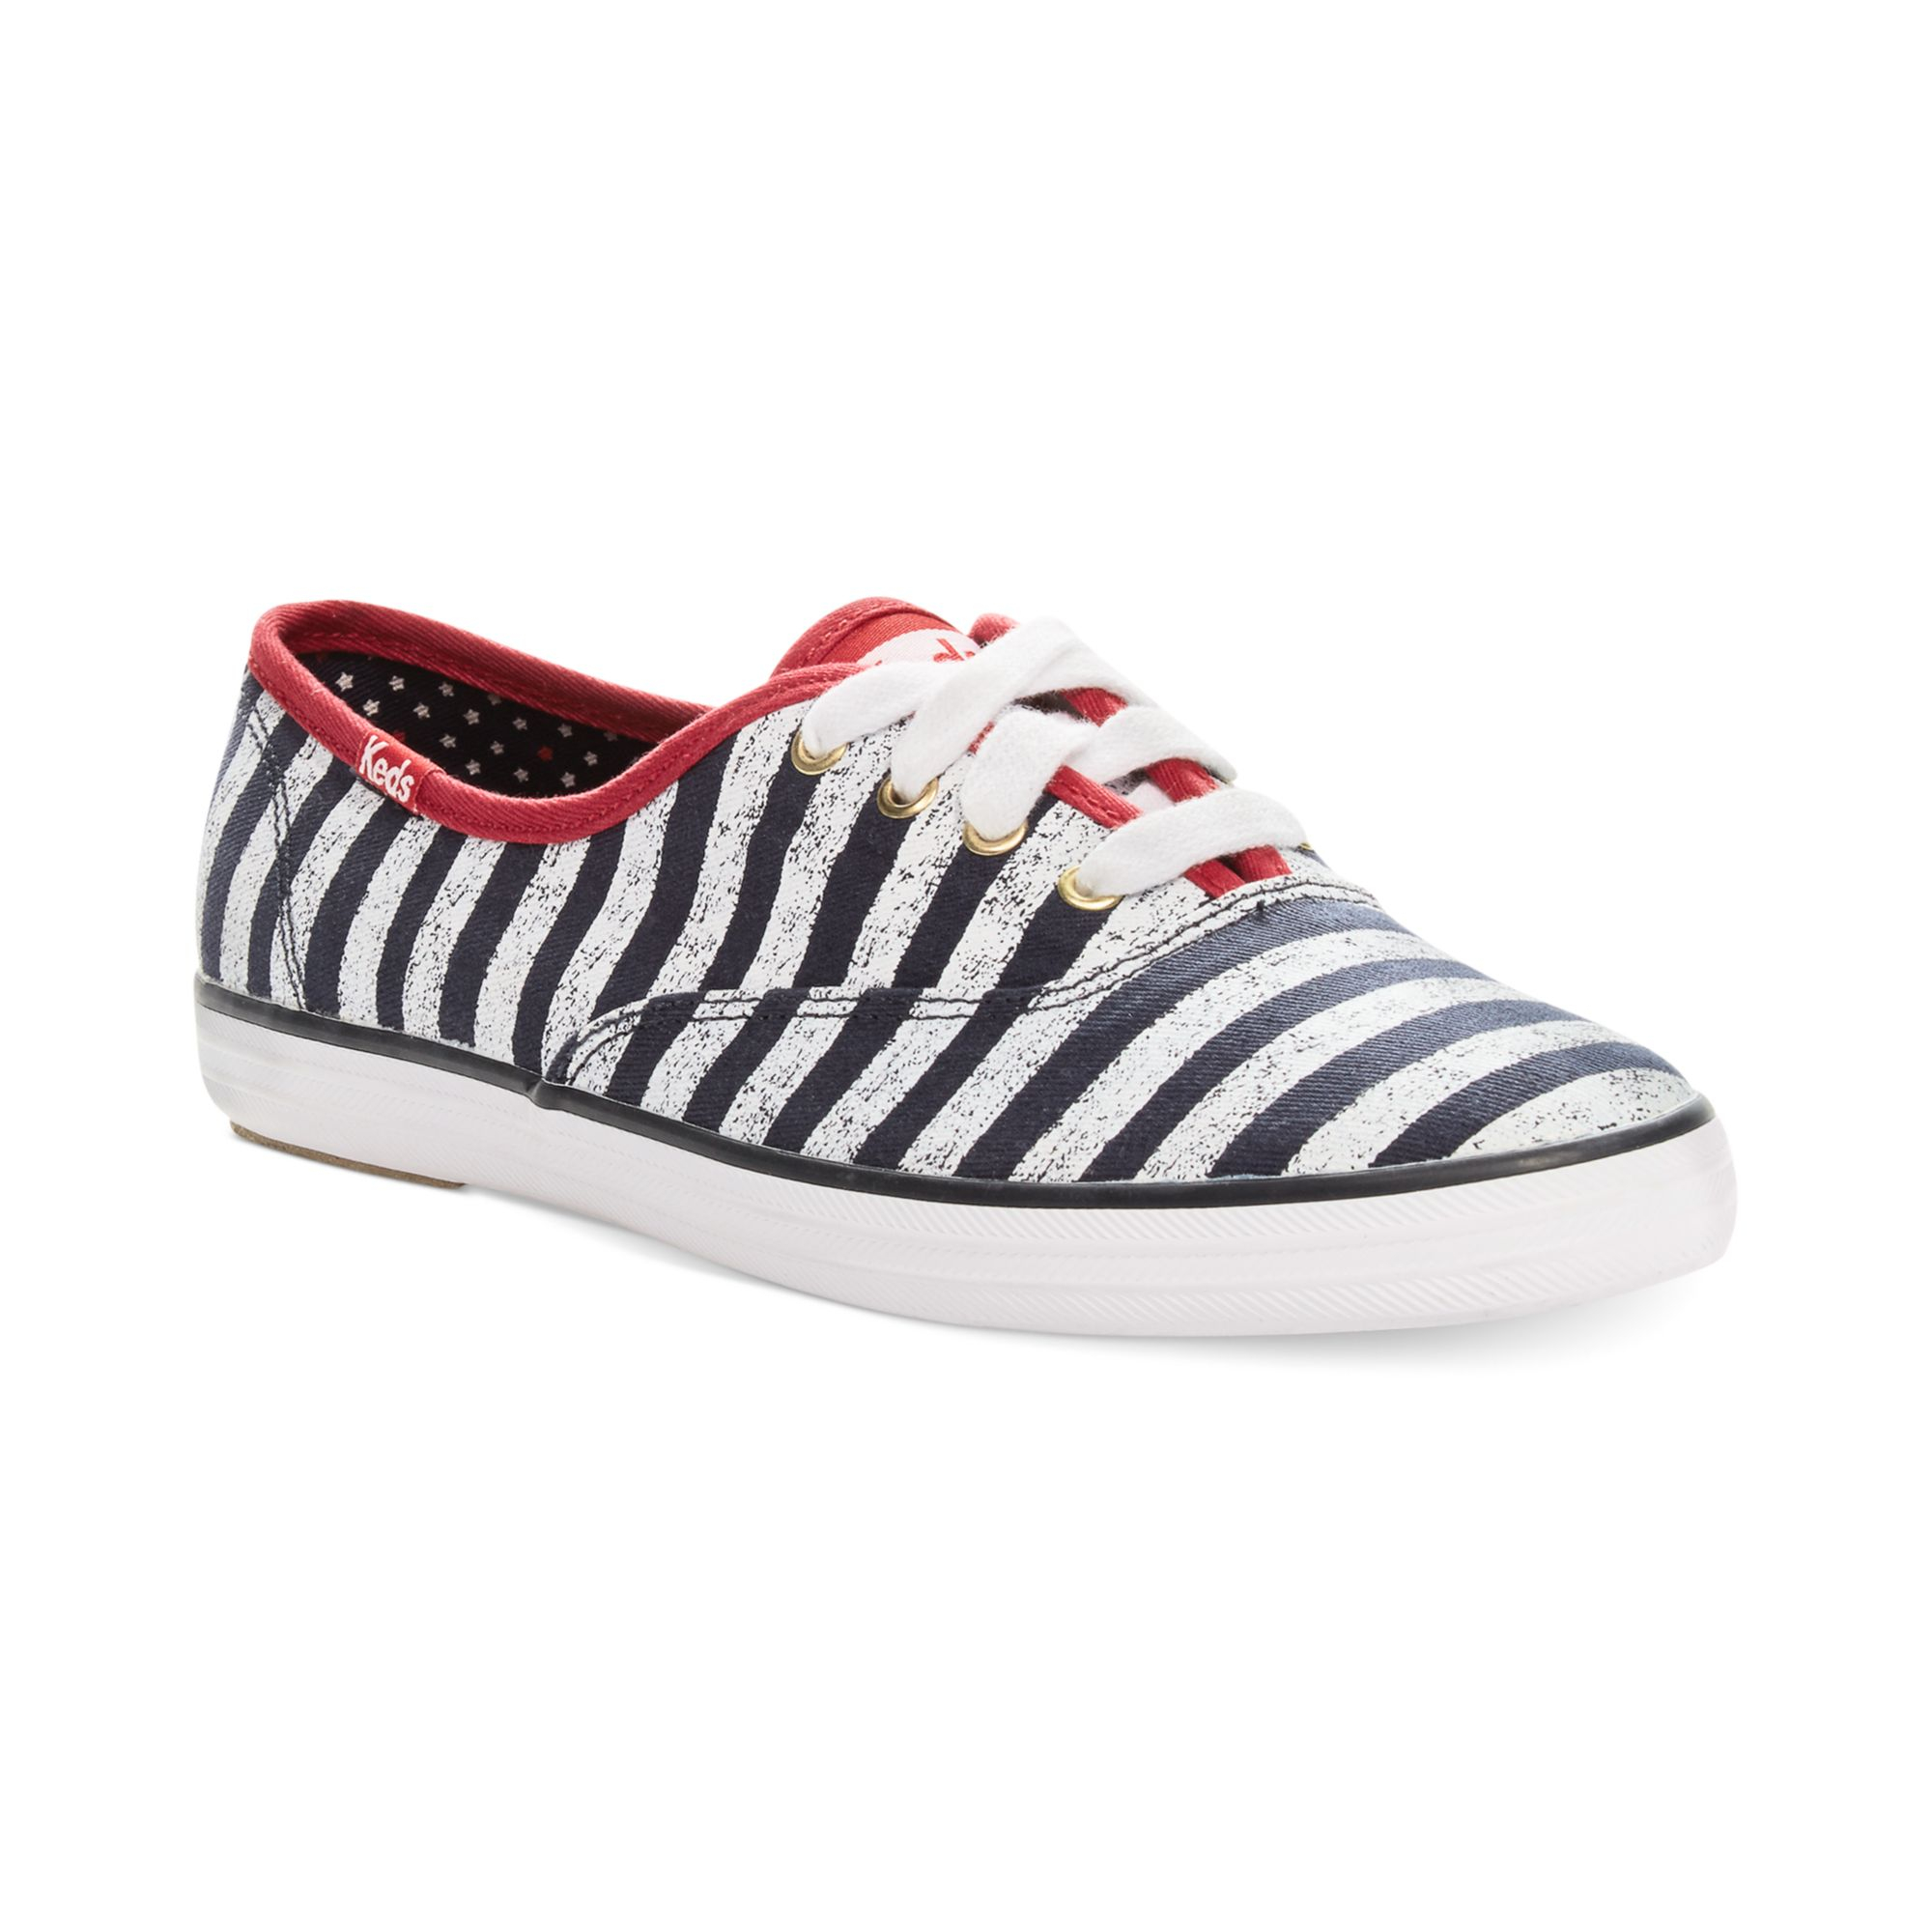 Keds Champion Patriotic Stripes Sneakers in Blue